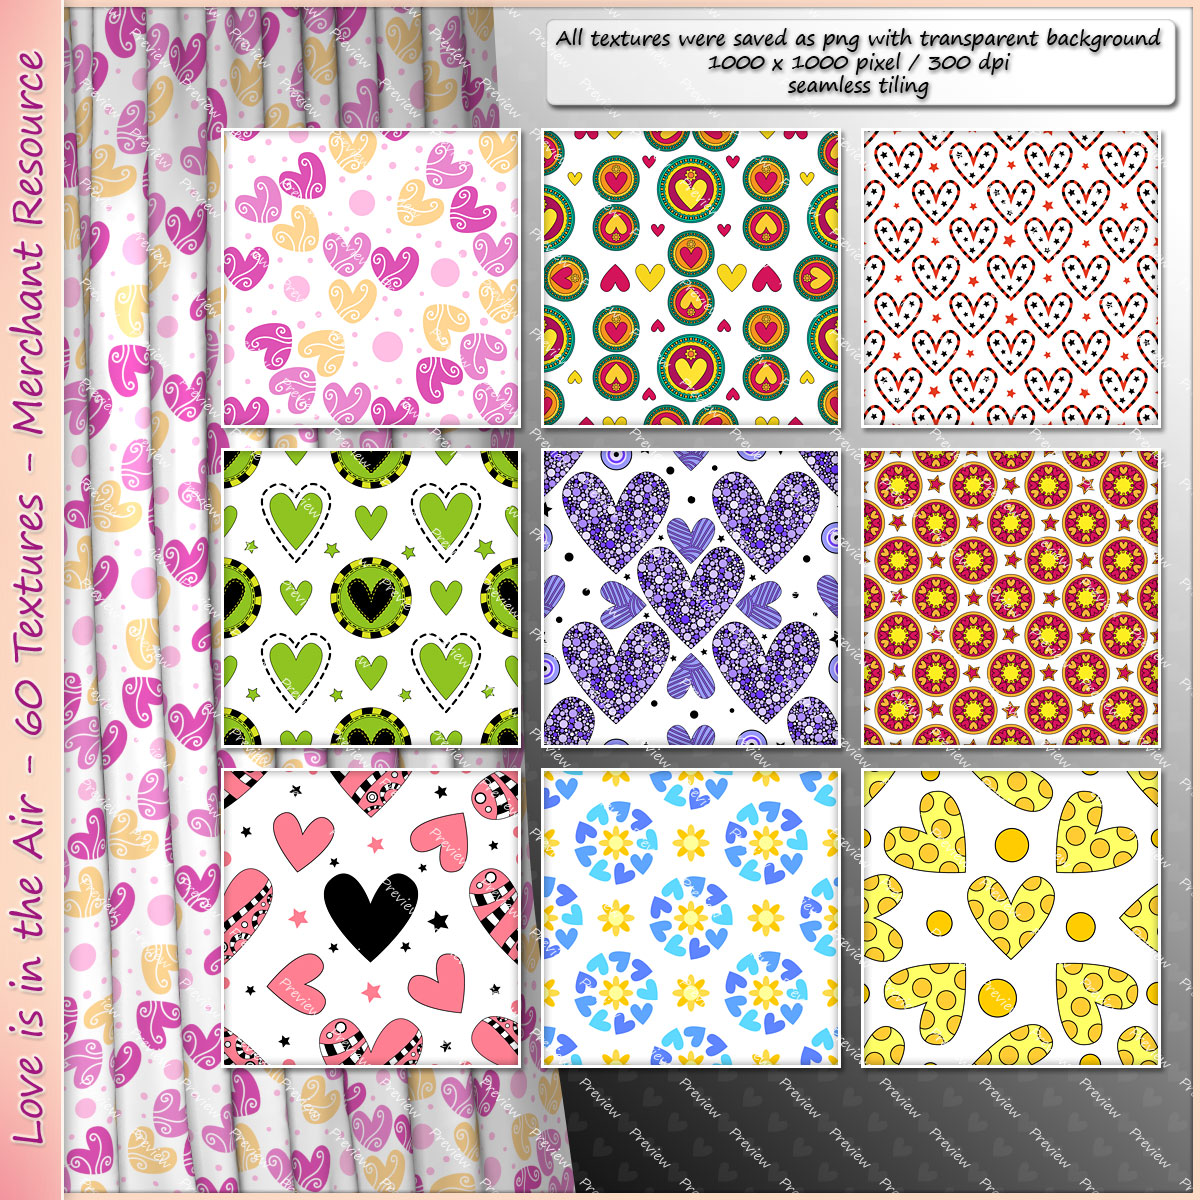 Love is in the Air - 60 Valentine Textures - Merchant Resource